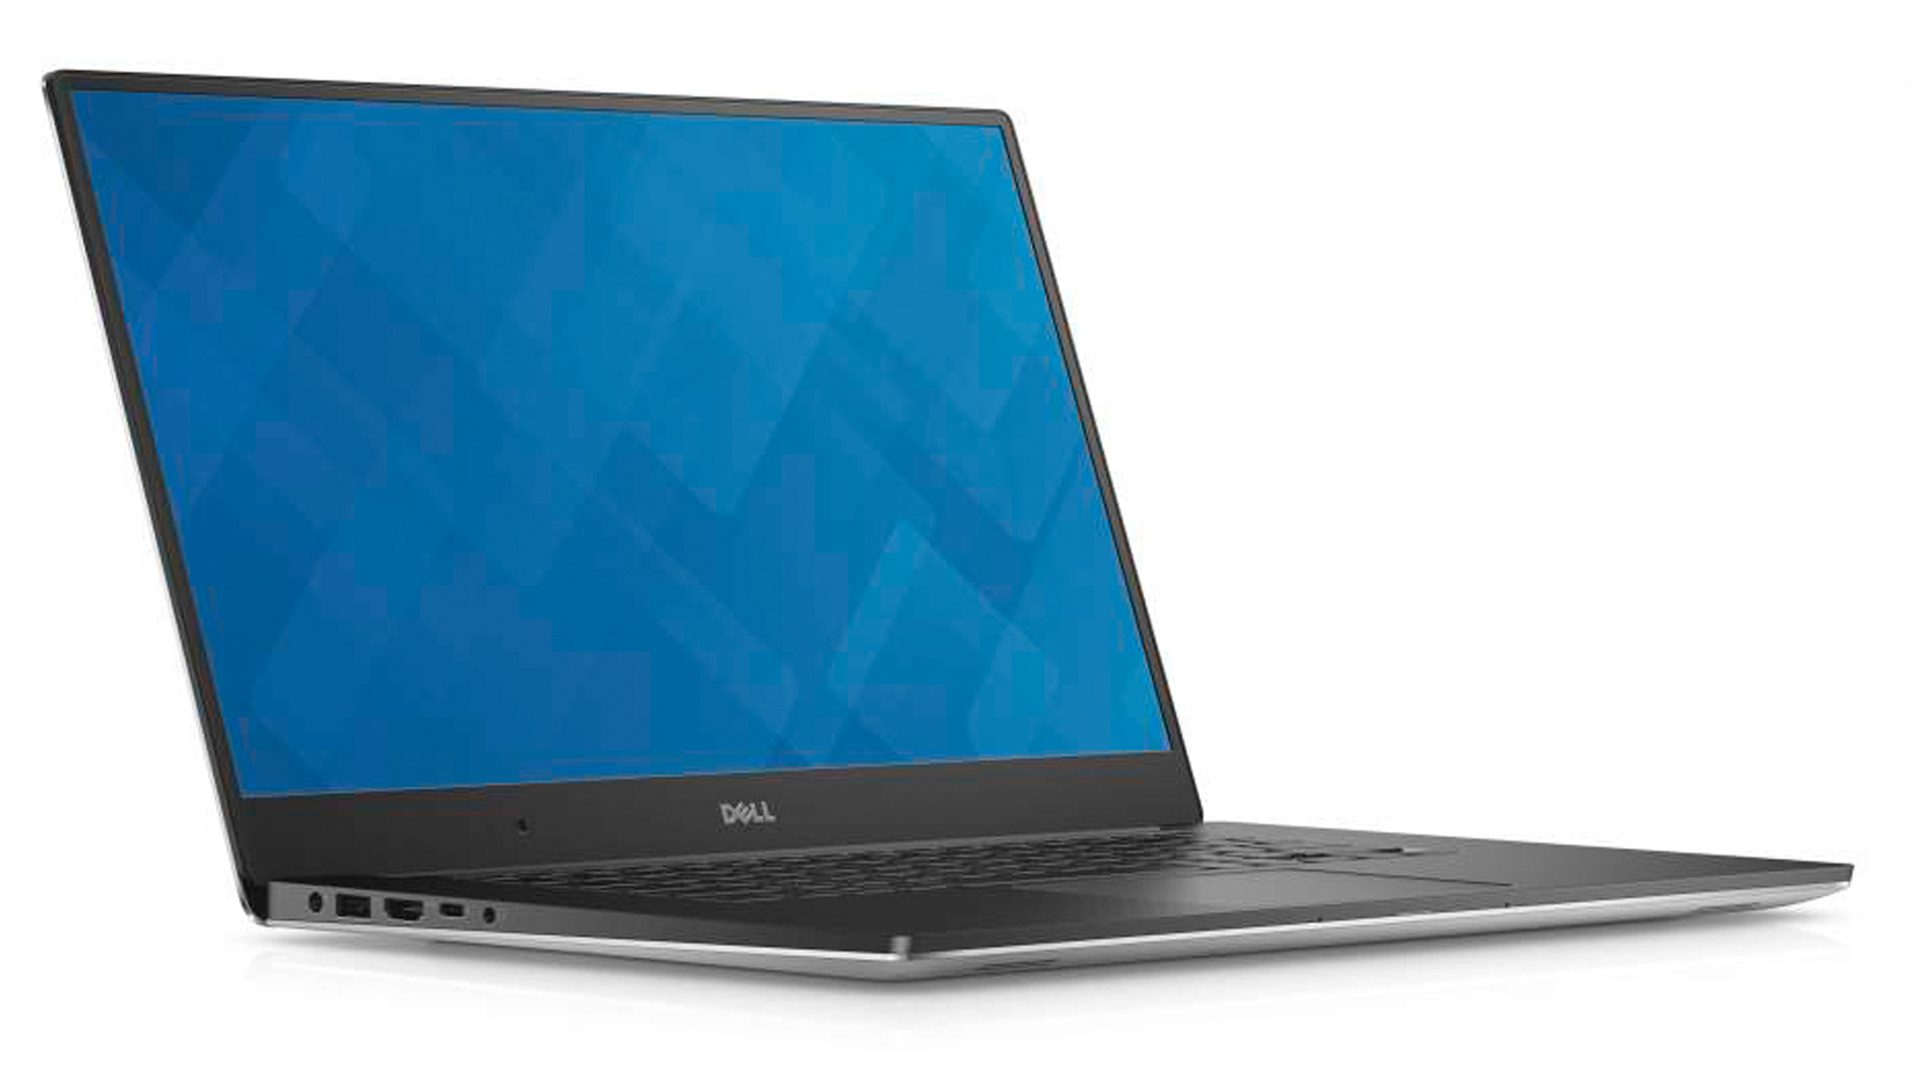 Dell-XPS-15-9550-3813-Ultrabook-Ansichten_4